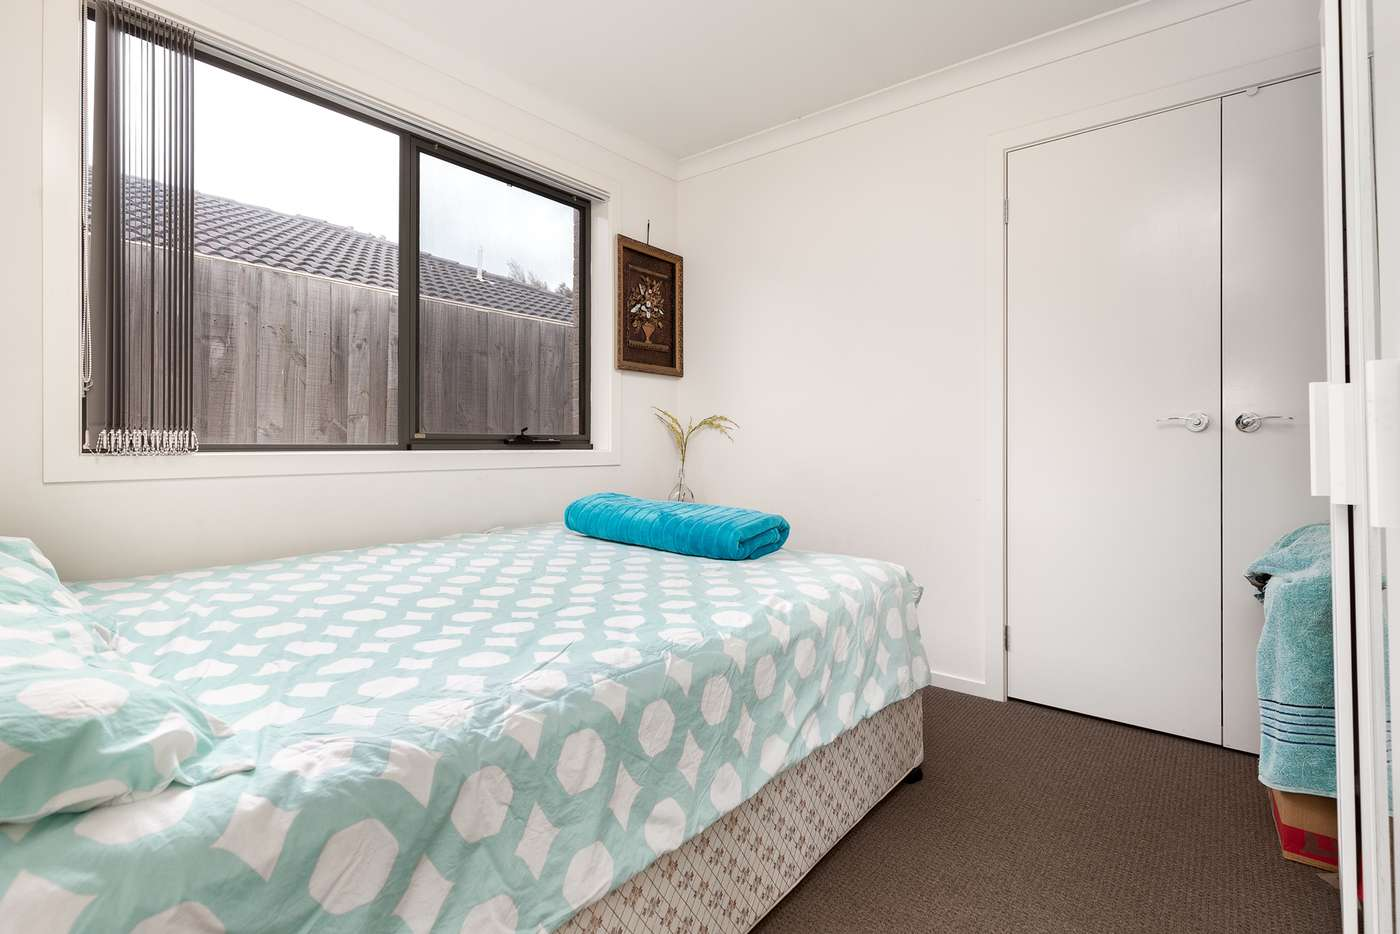 Fifth view of Homely unit listing, 3/10 Kingfisher Court, Hastings VIC 3915